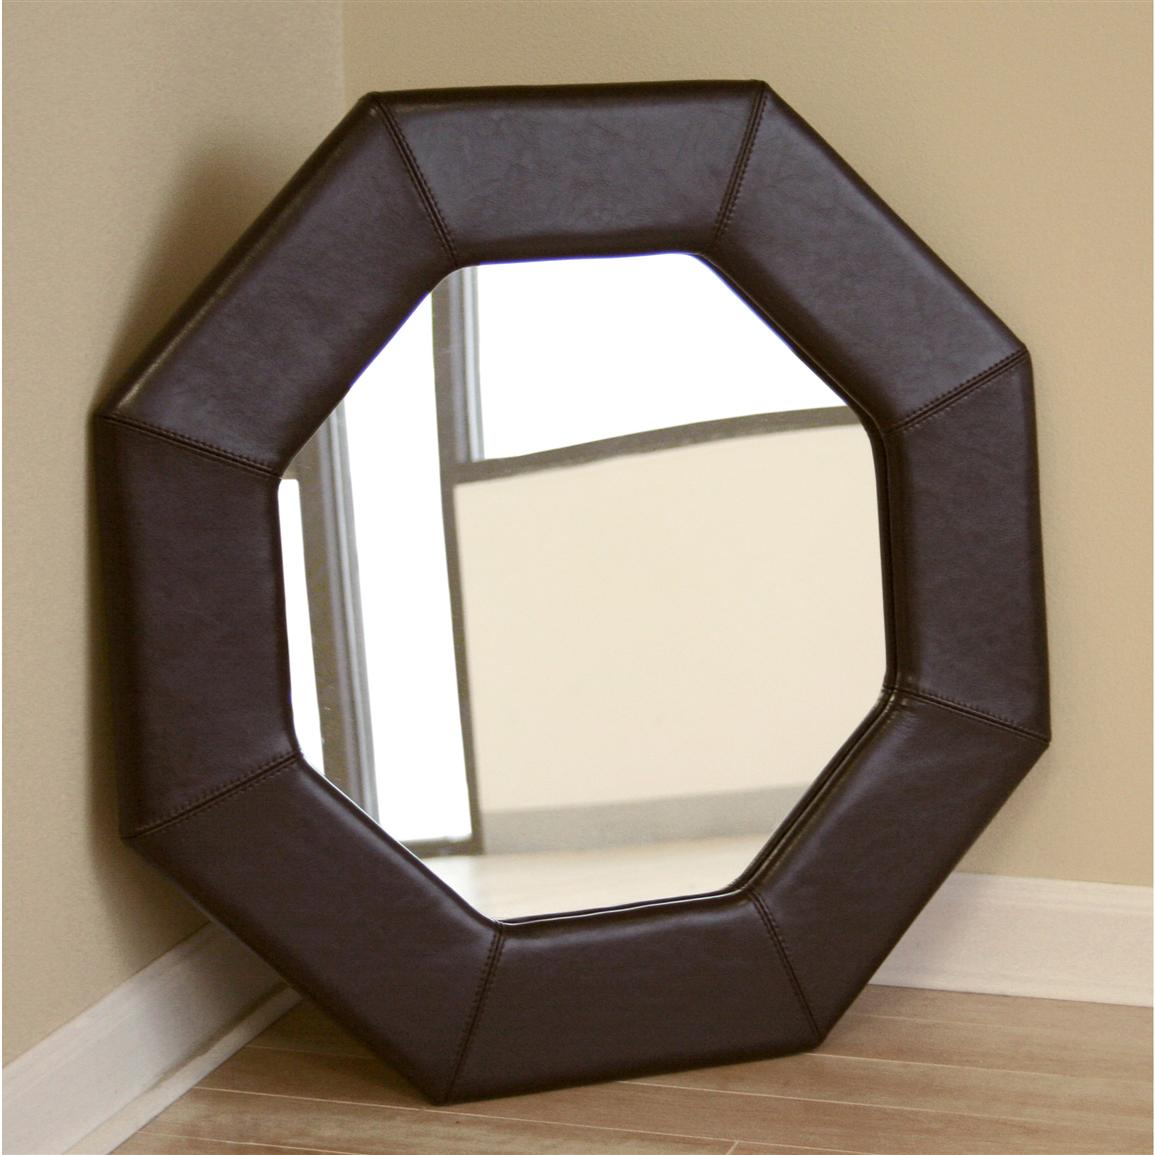 Wholesale Interiors® Espresso Brown Leather Octagon Mirror